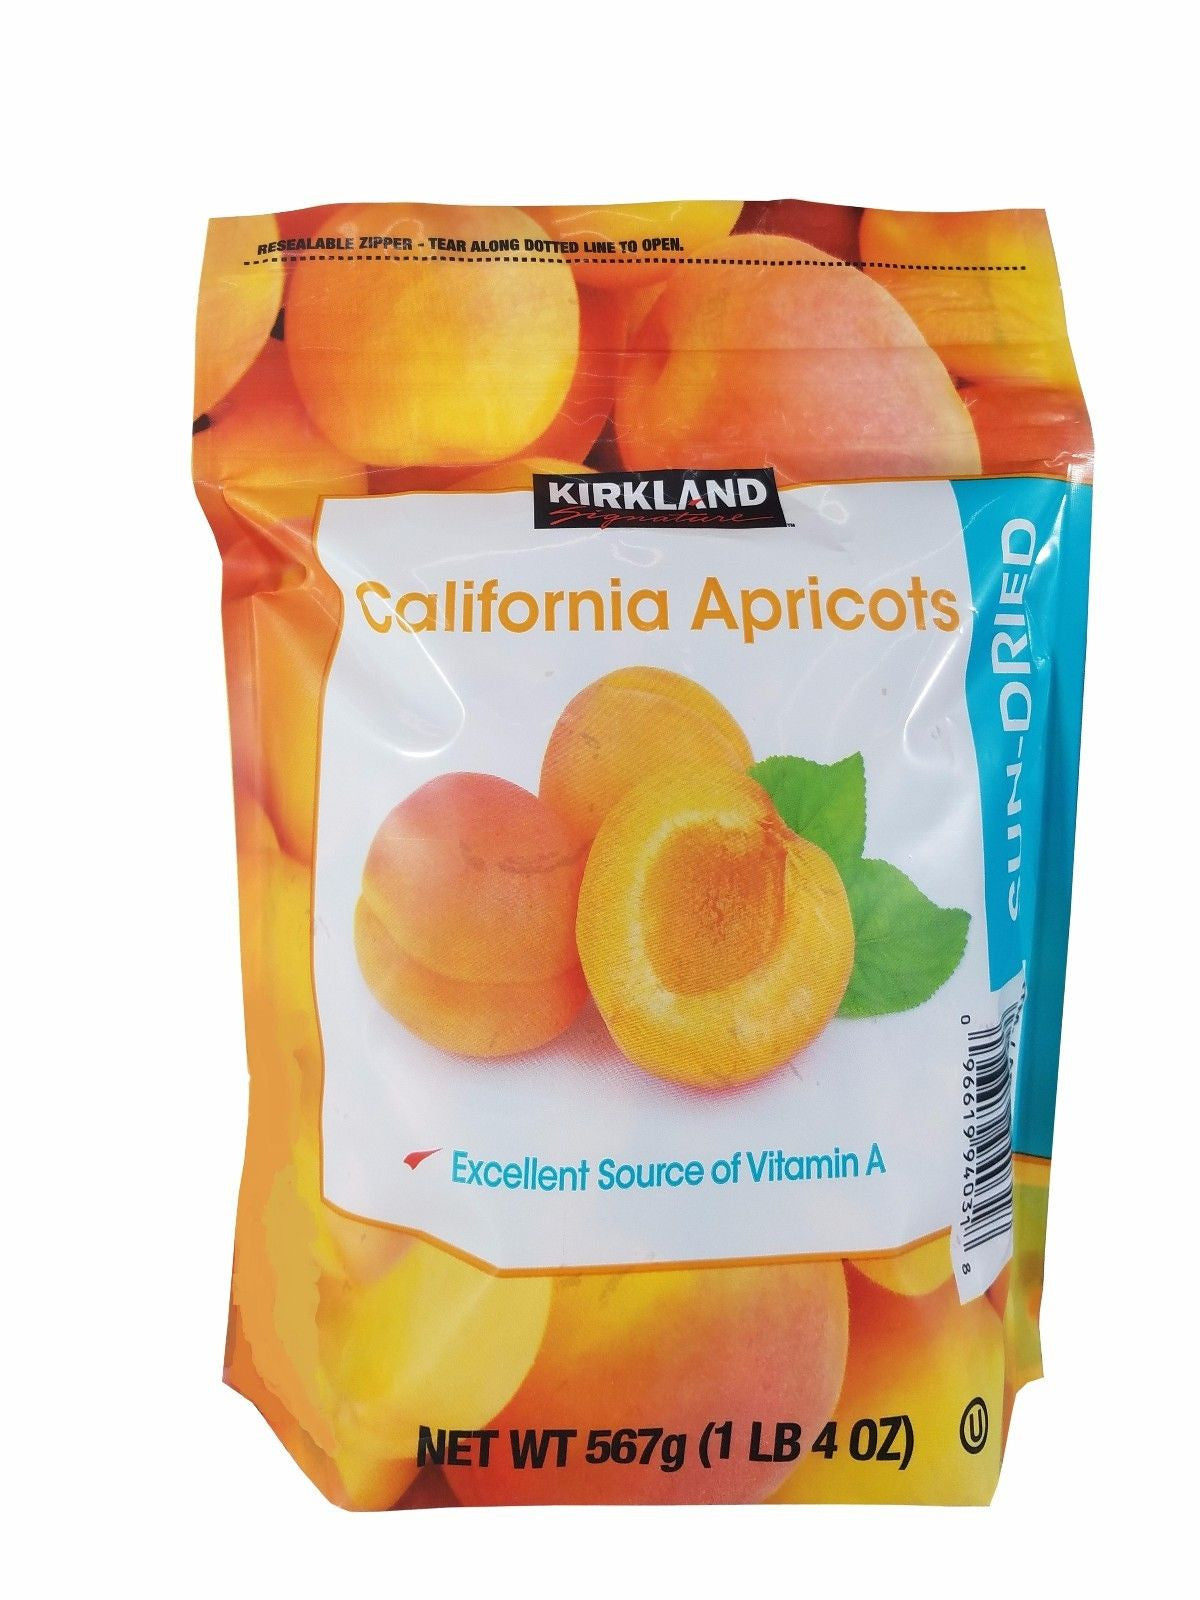 Kirkland Signature California Apricots Sun Dried Fruit 1 LB 4 OZ